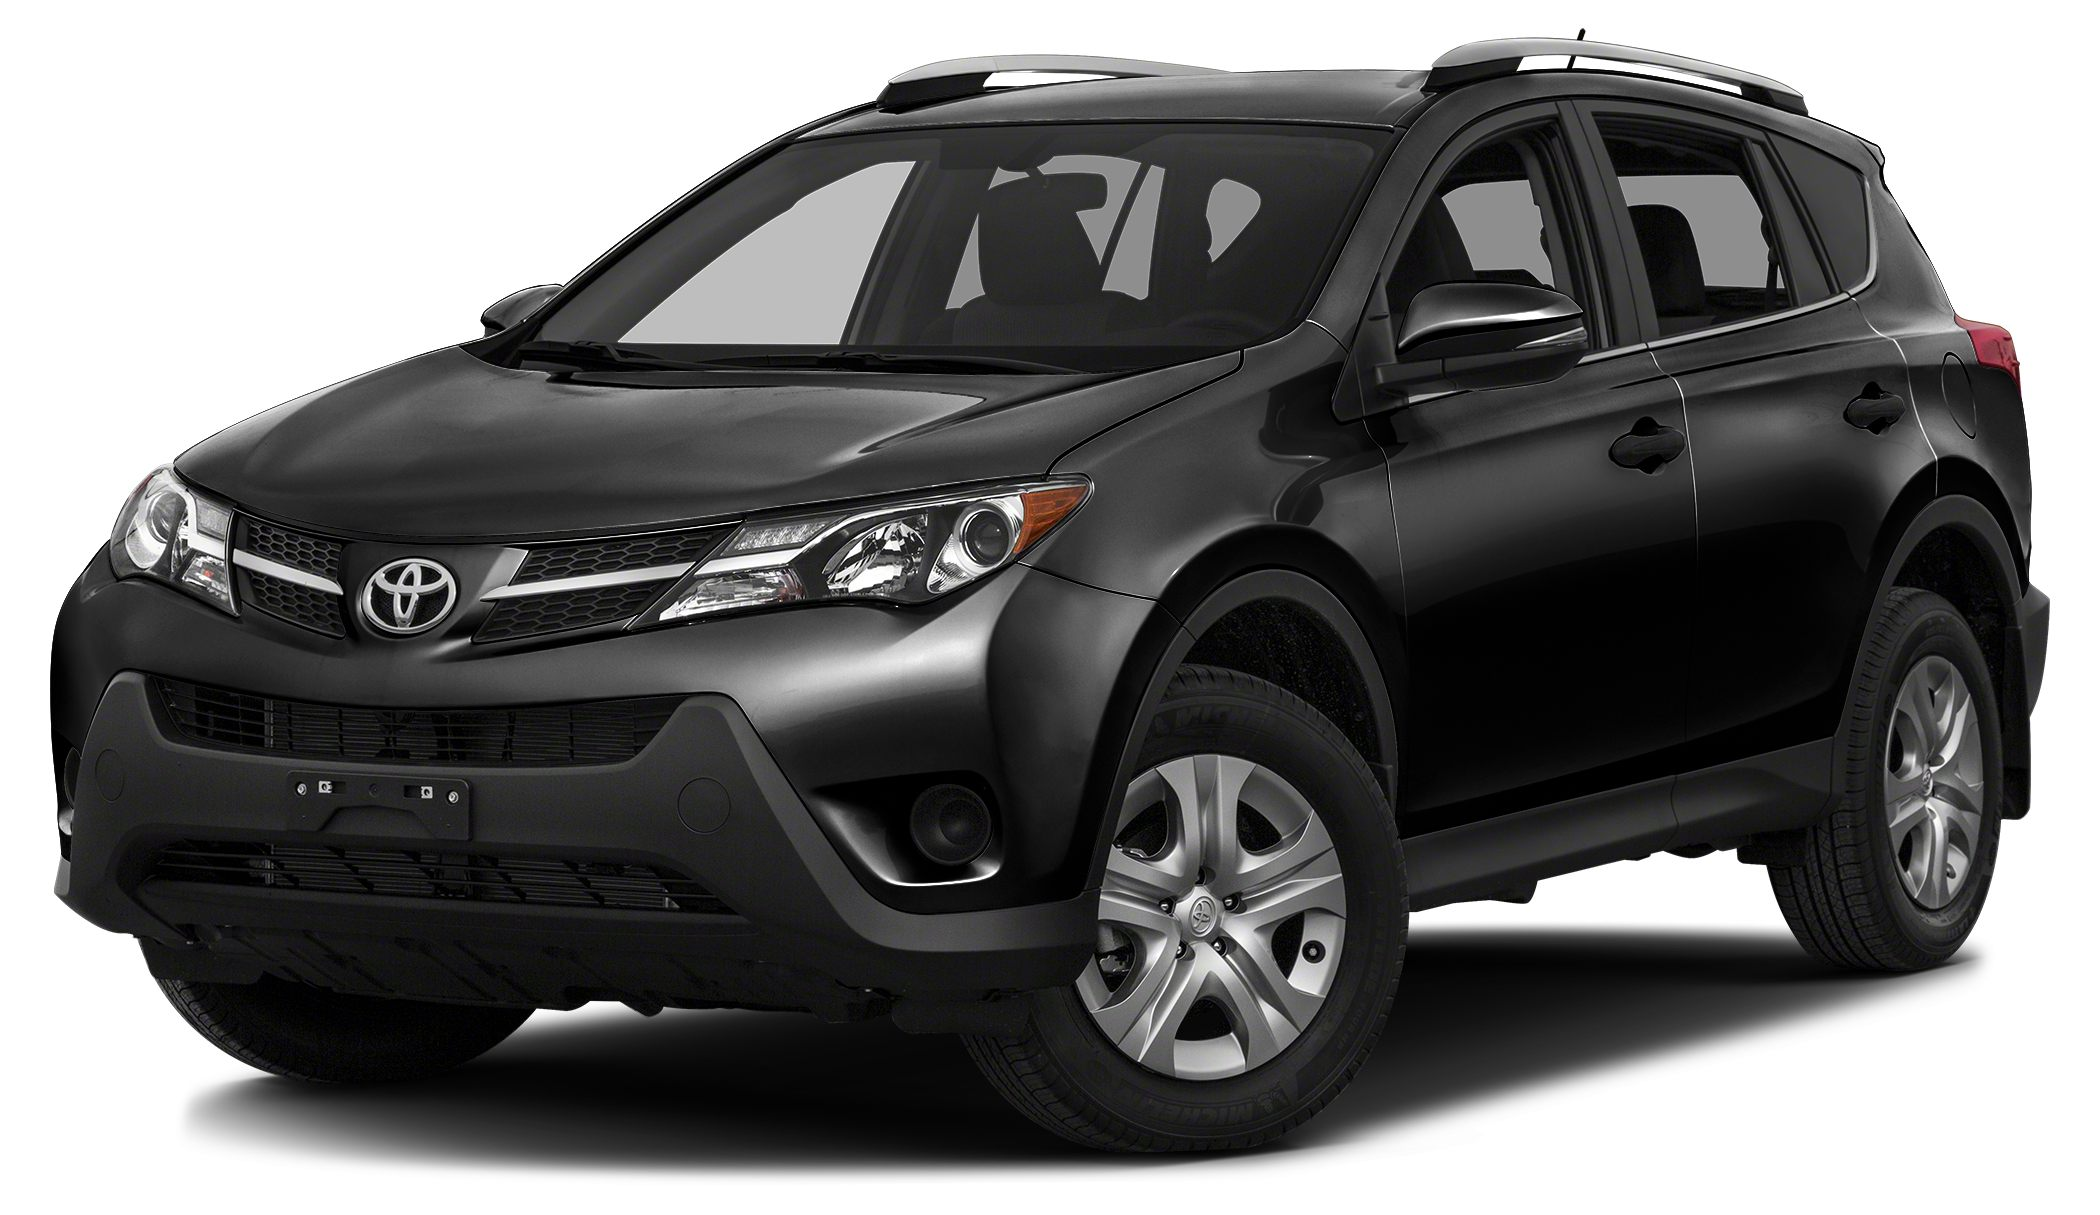 2015 Toyota RAV4 XLE RAV4 XLE and AWD ATTENTION In a class by itself You wont find a cleaner